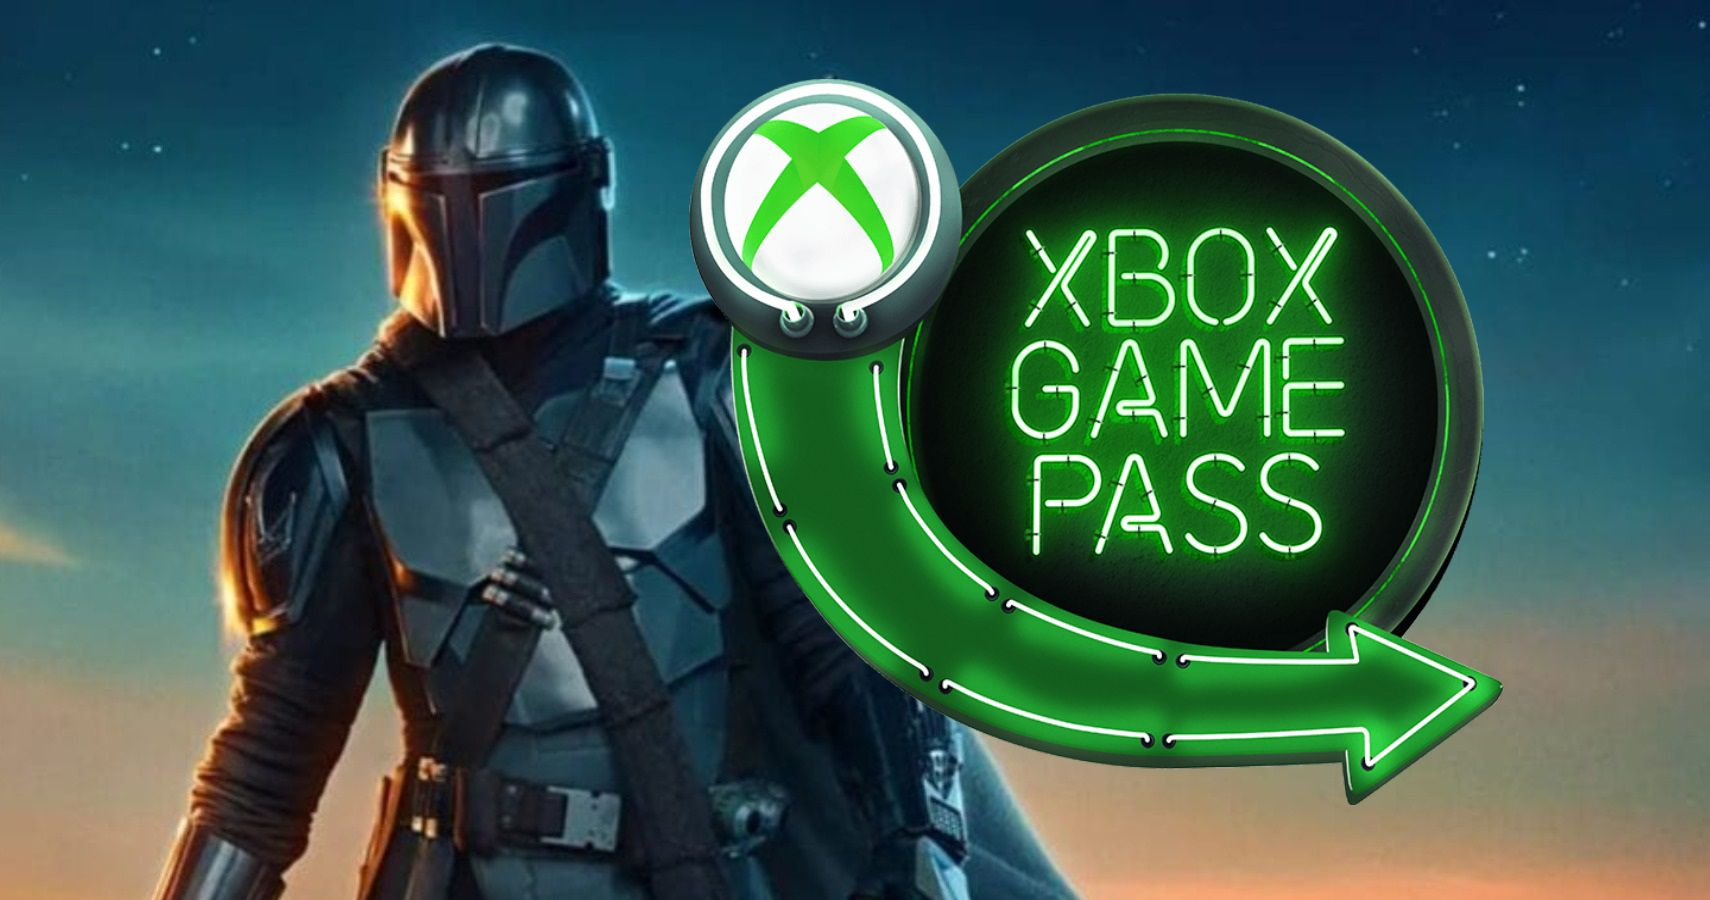 Xbox Game Pass Subscribers Will Receive 30 Days Of Disney+ This Holiday Season